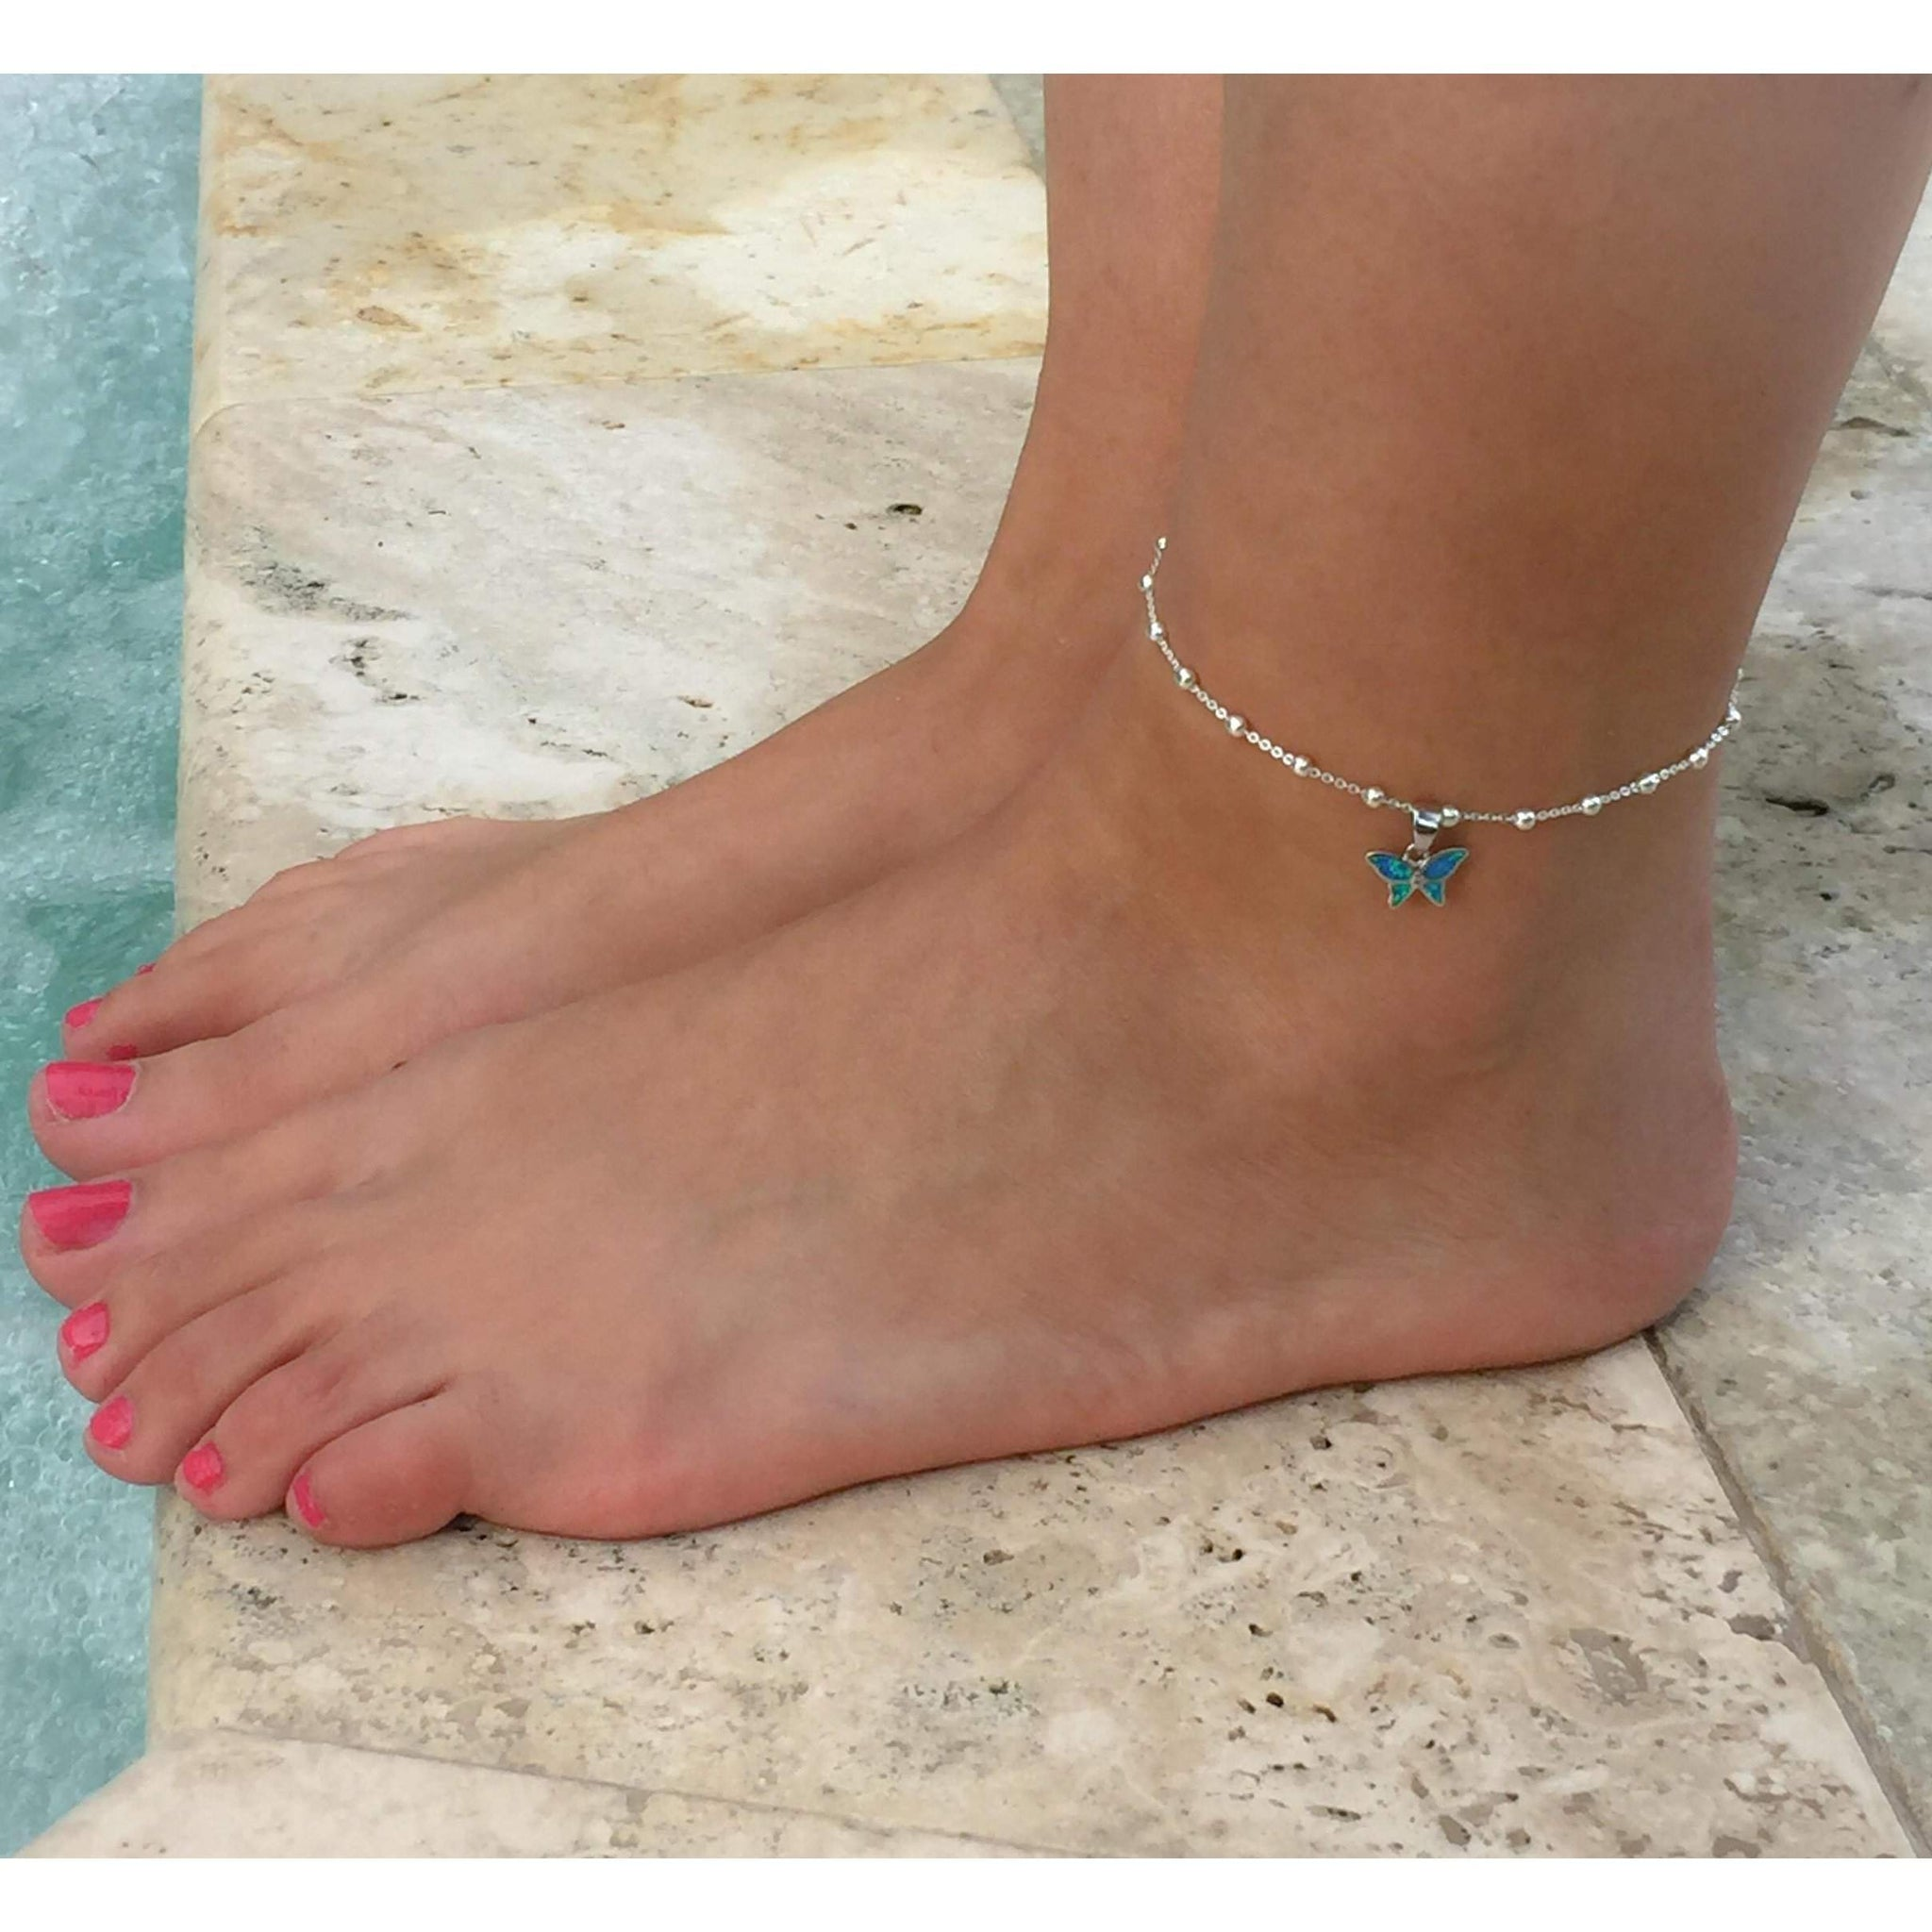 ankle product popular orders jewelry free on gold anklet overstock bracelets silver shipping hills bracelet black over watches